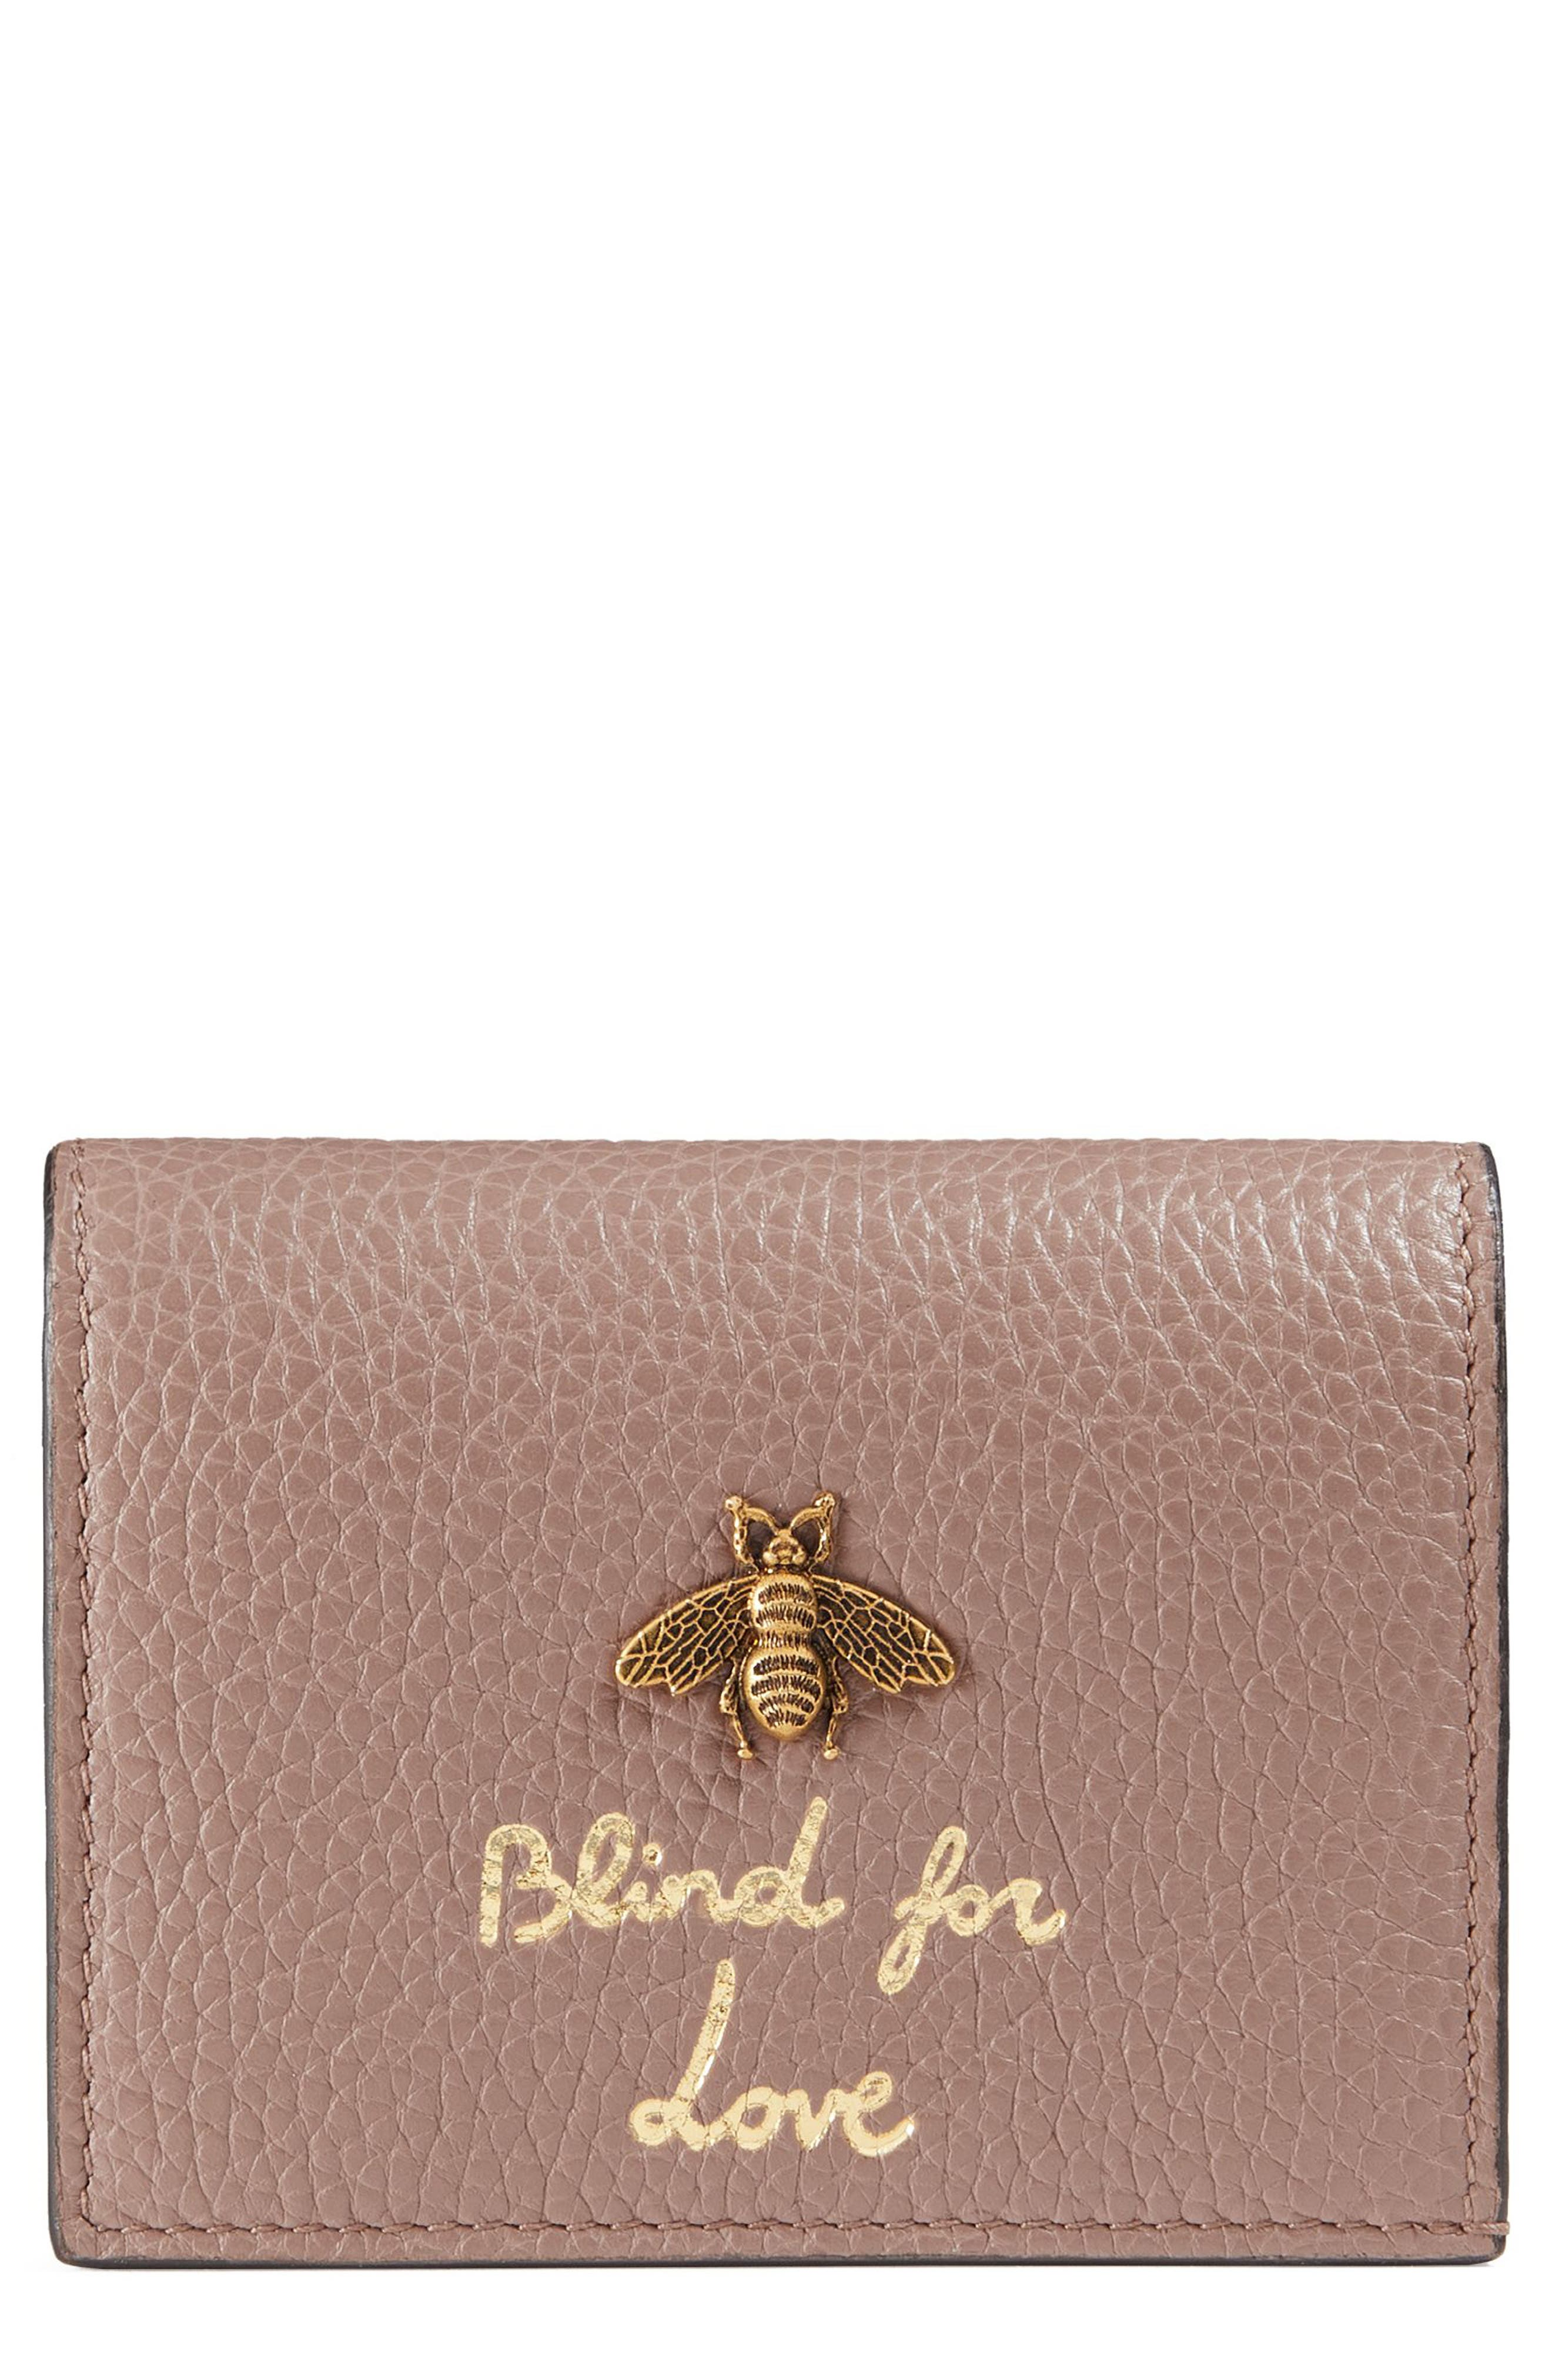 Animalier Bee Leather Card Case,                         Main,                         color, Porcelain Rose